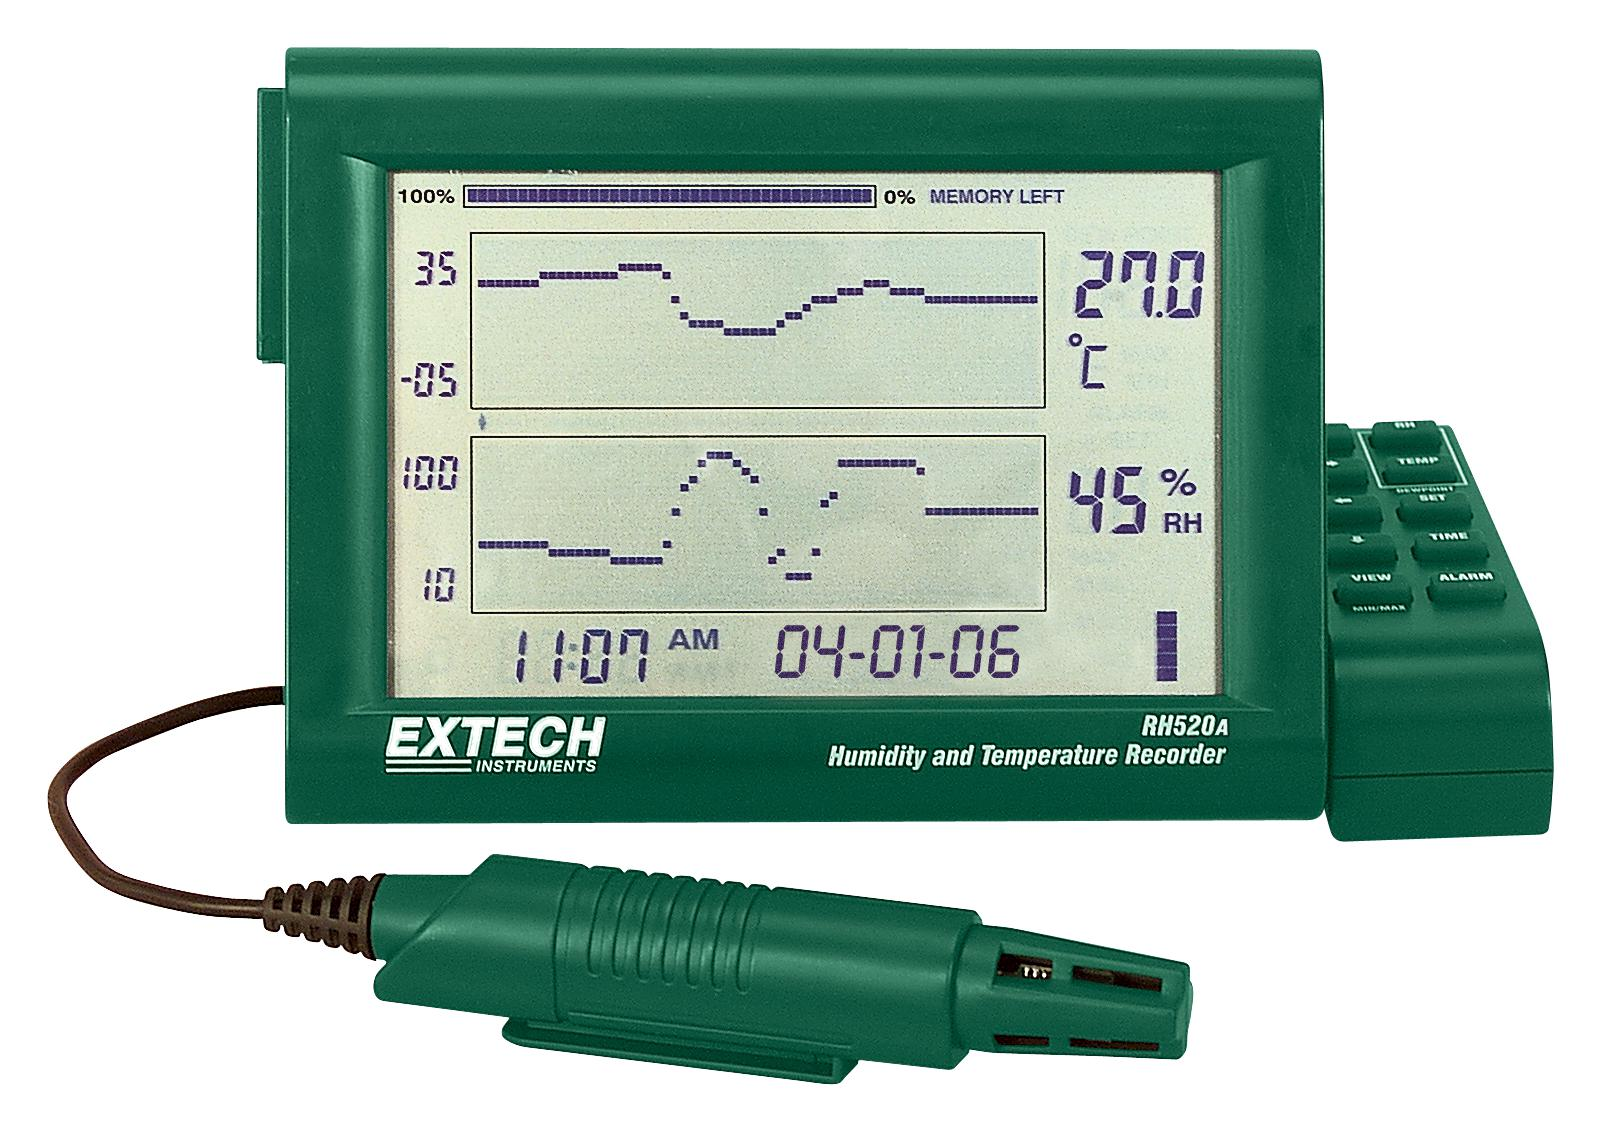 hight resolution of rh520a extech instruments recorder humidity and temperature chart 3